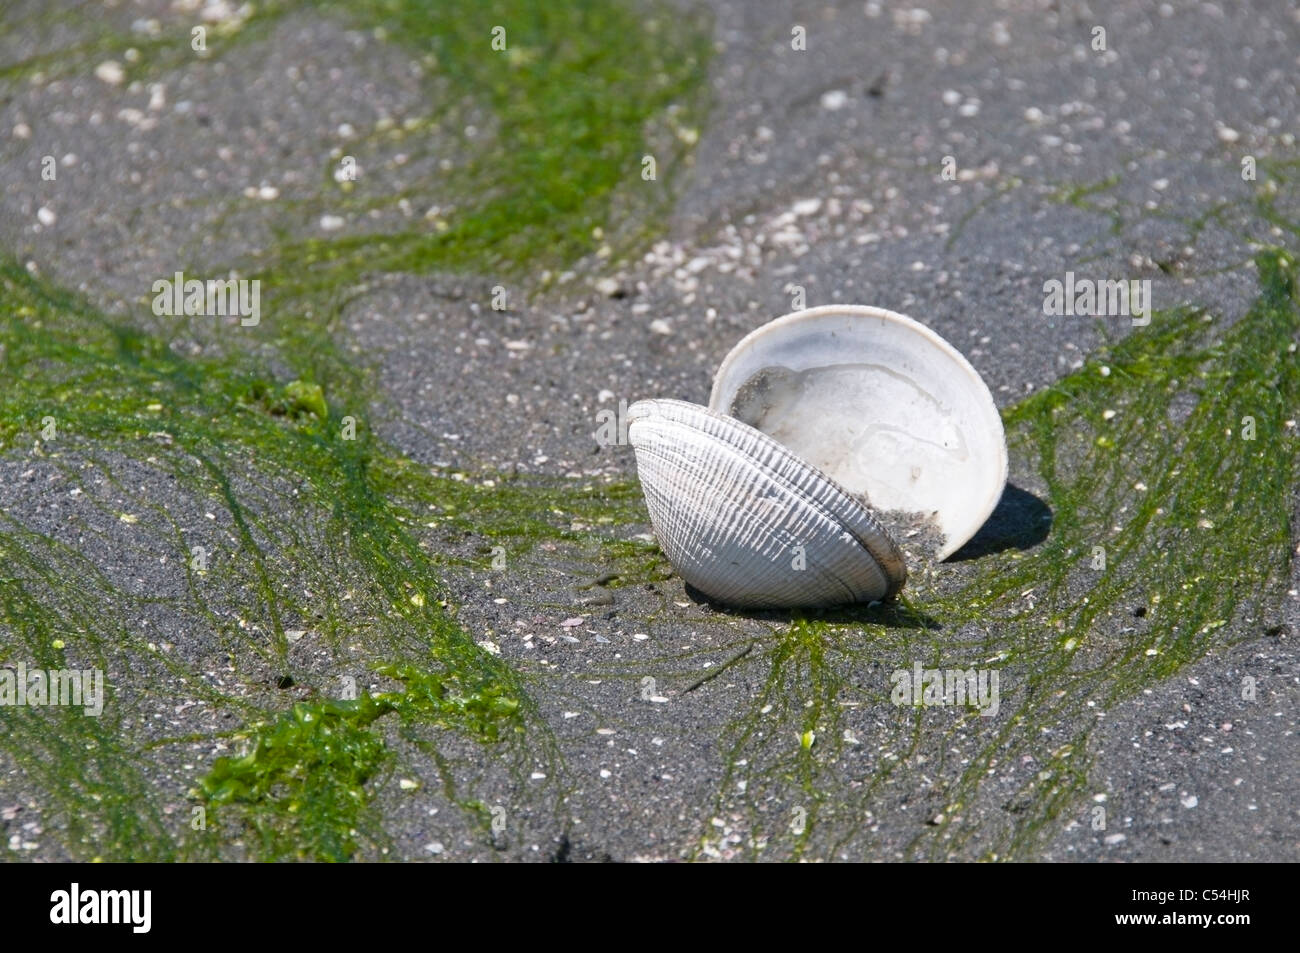 Exposed open bivalve mollusk at low tide in the sand surrounded by seaweed in Olympia, Washington. - Stock Image